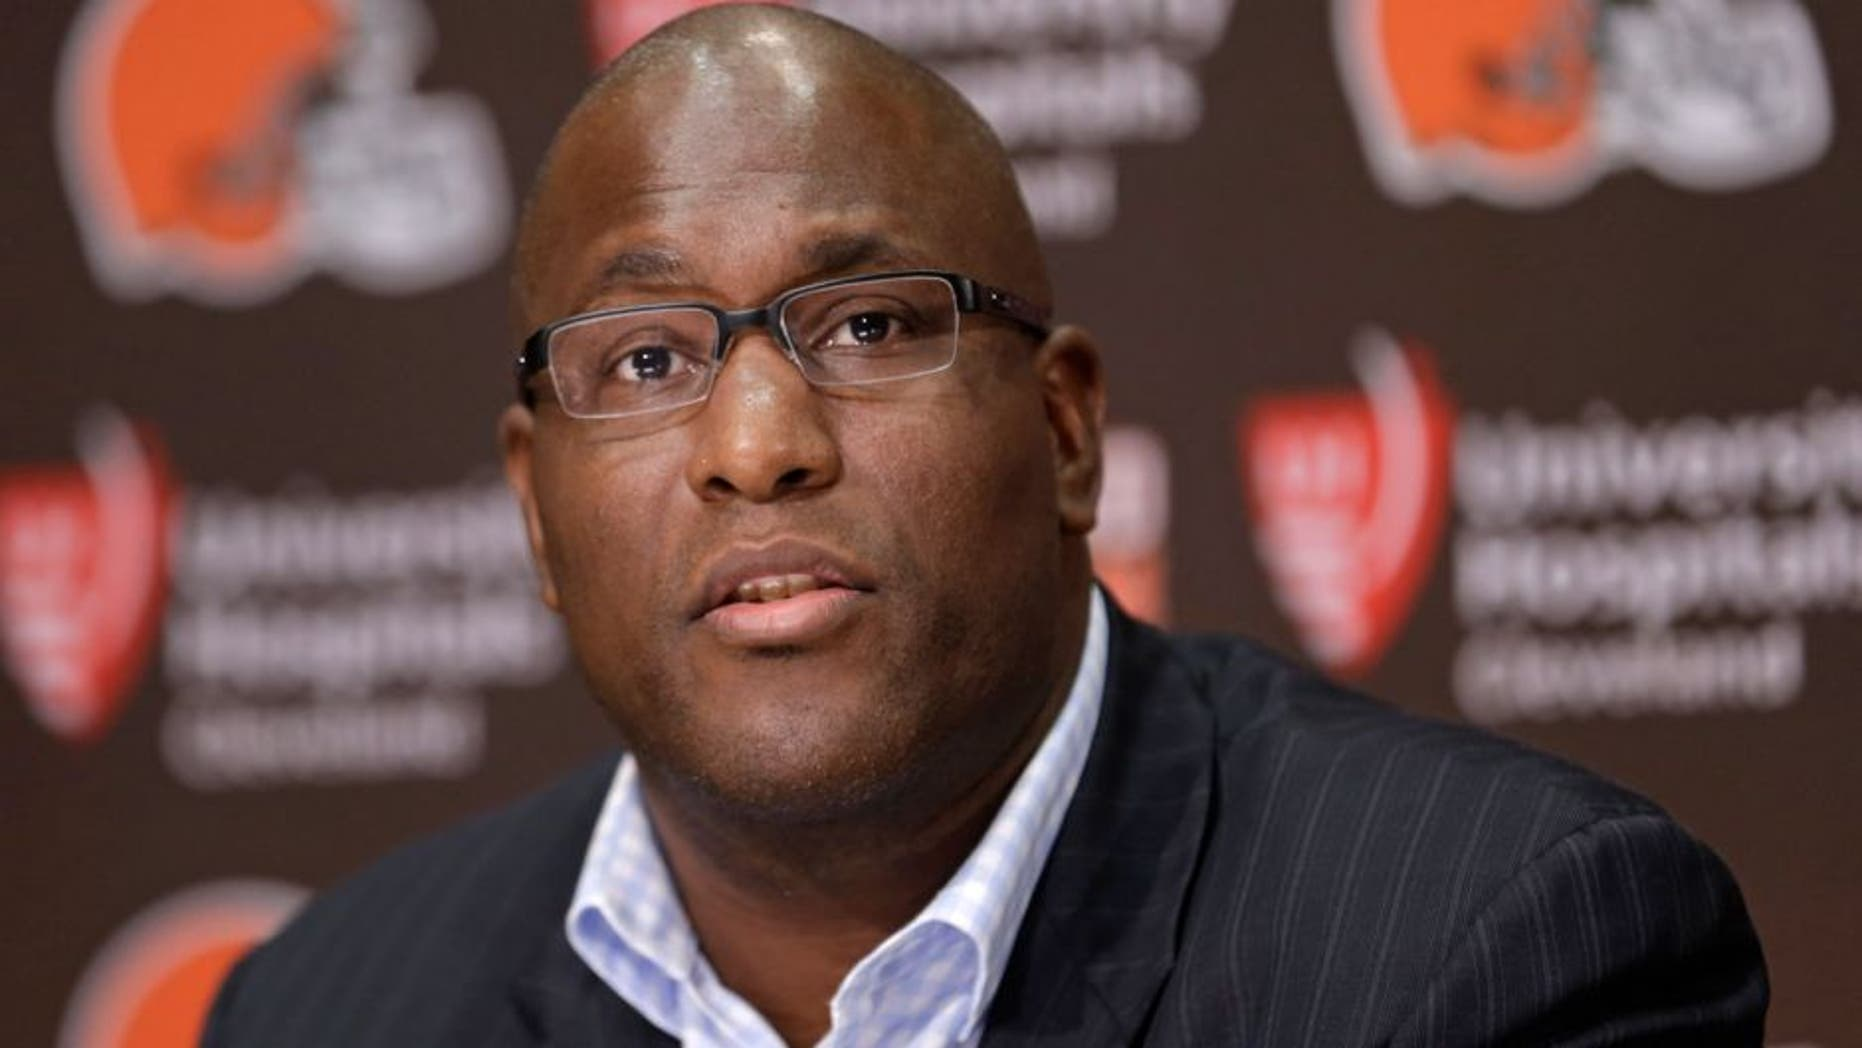 Cleveland Browns general manager Ray Farmer answers questions about the Browns' season during an NFL football news conference, Tuesday, Dec. 30, 2014, in Berea, Ohio. (AP Photo/Tony Dejak)